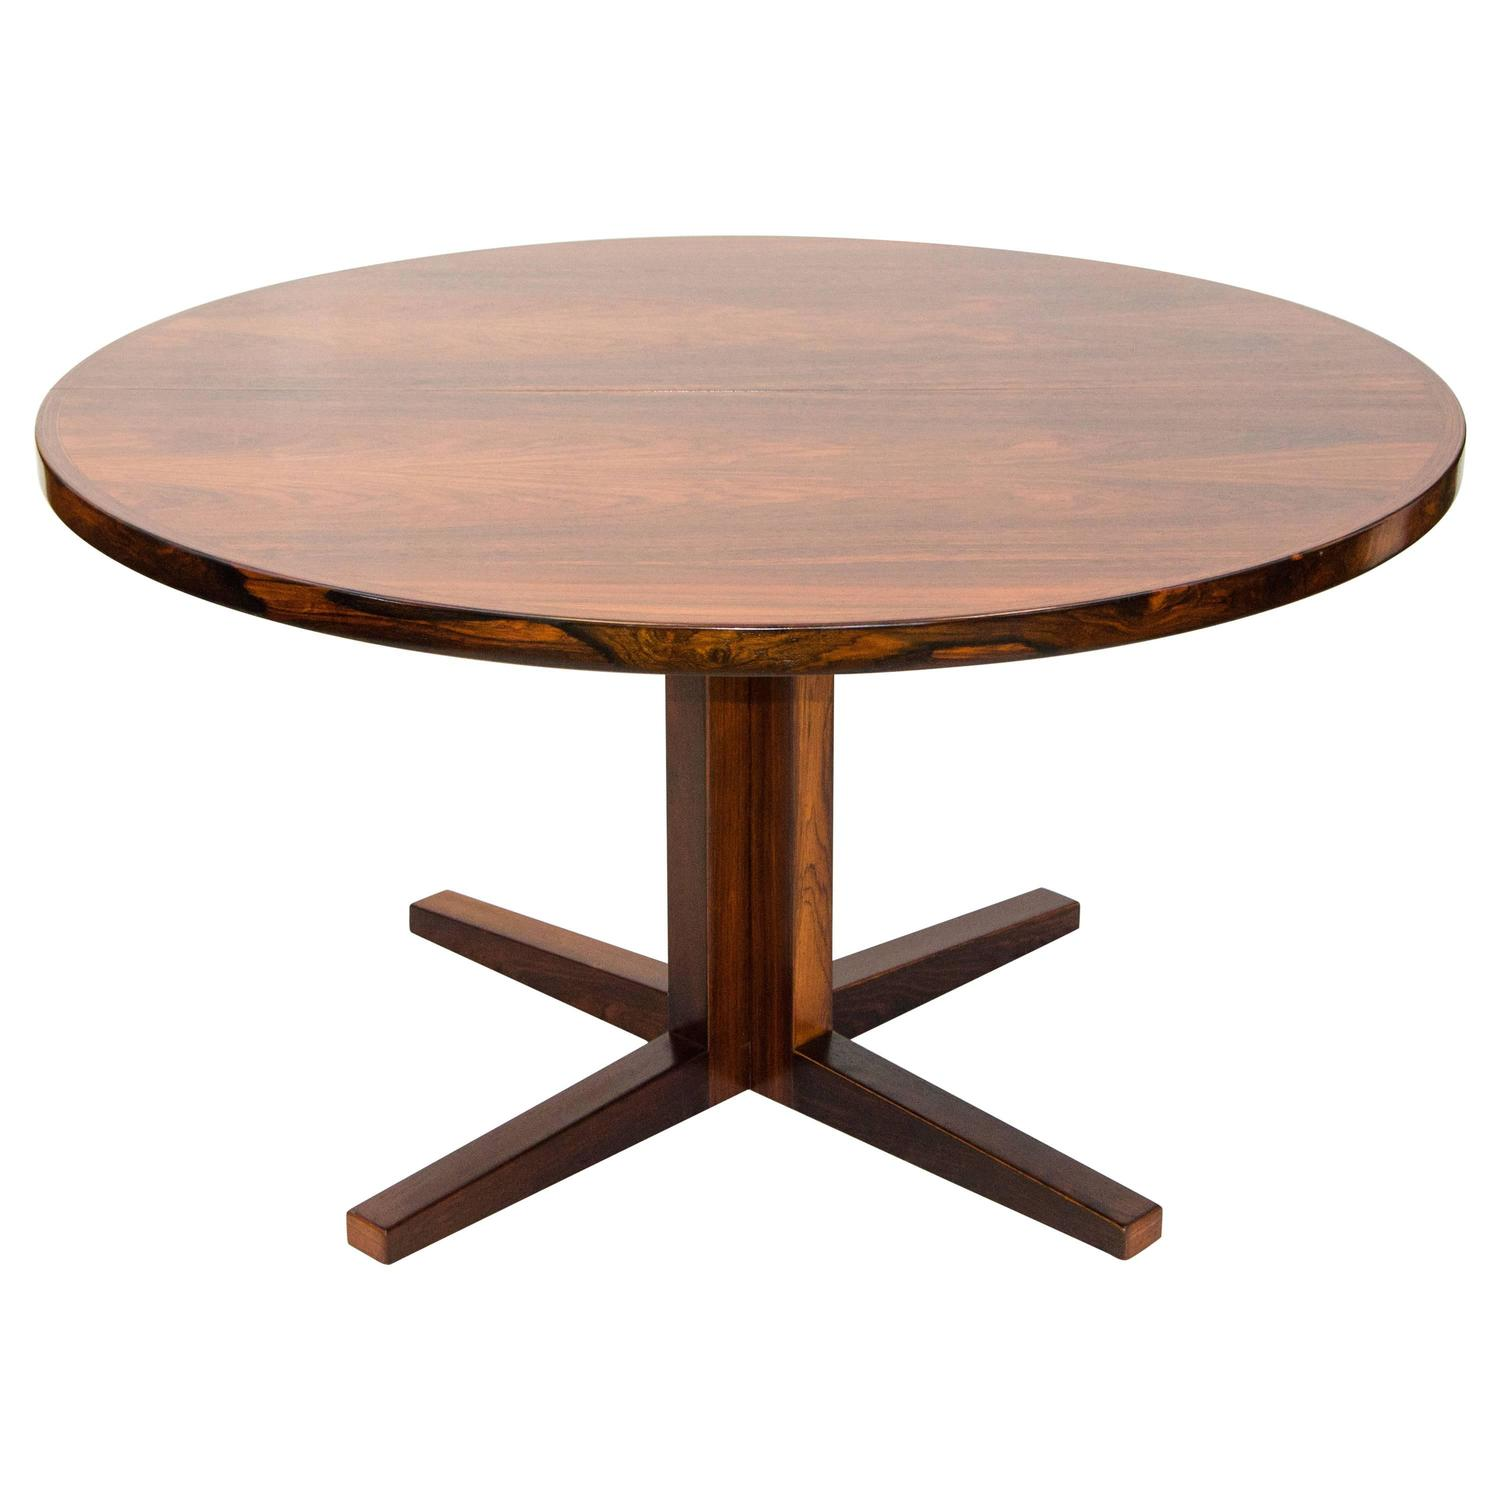 Danish rosewood round pedestal dining table one leaf at for Round pedestal table with leaf